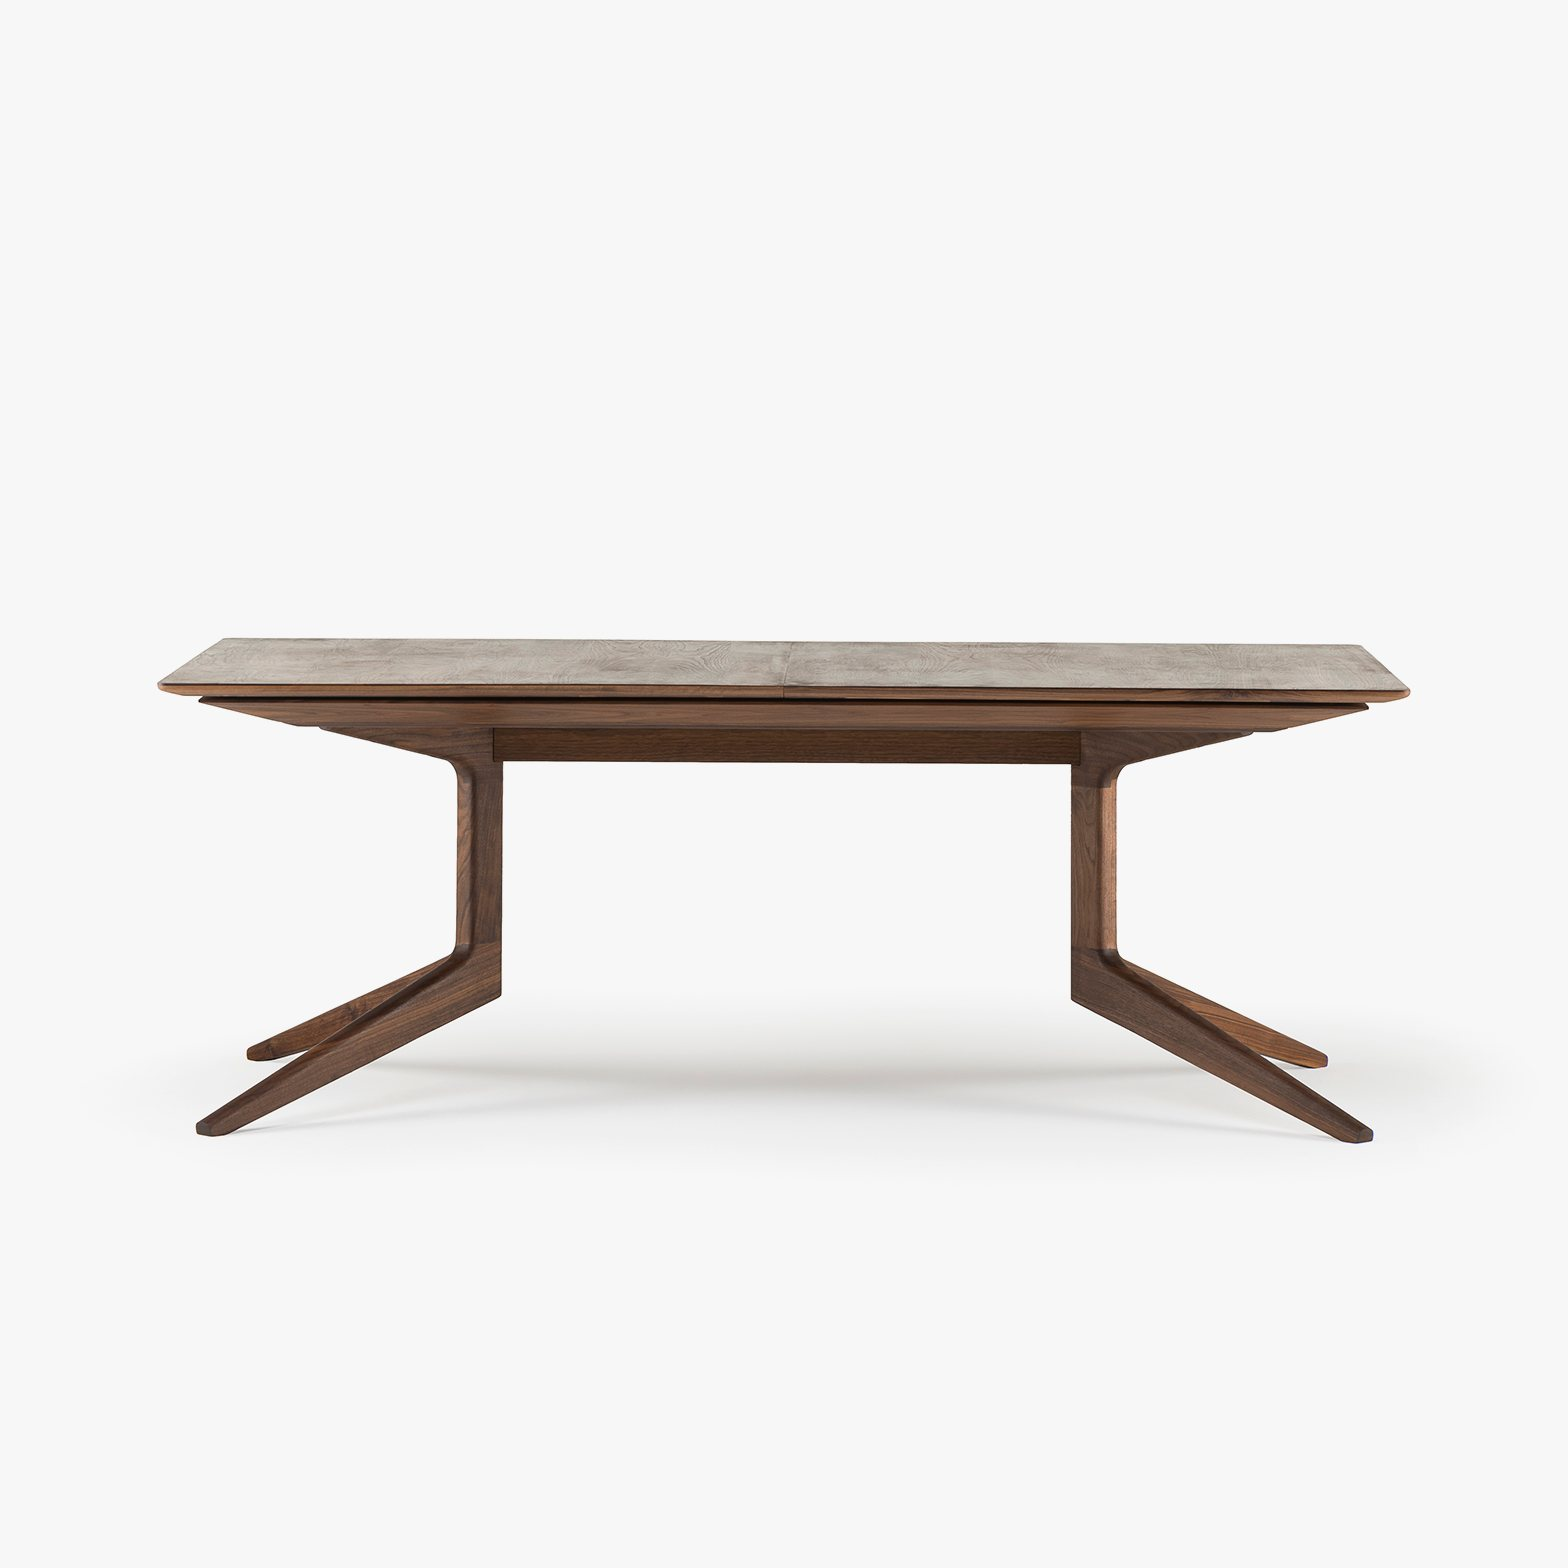 Ordinaire 341E Light Extending Table In Danish Oiled Walnut, No Leaves In Place.